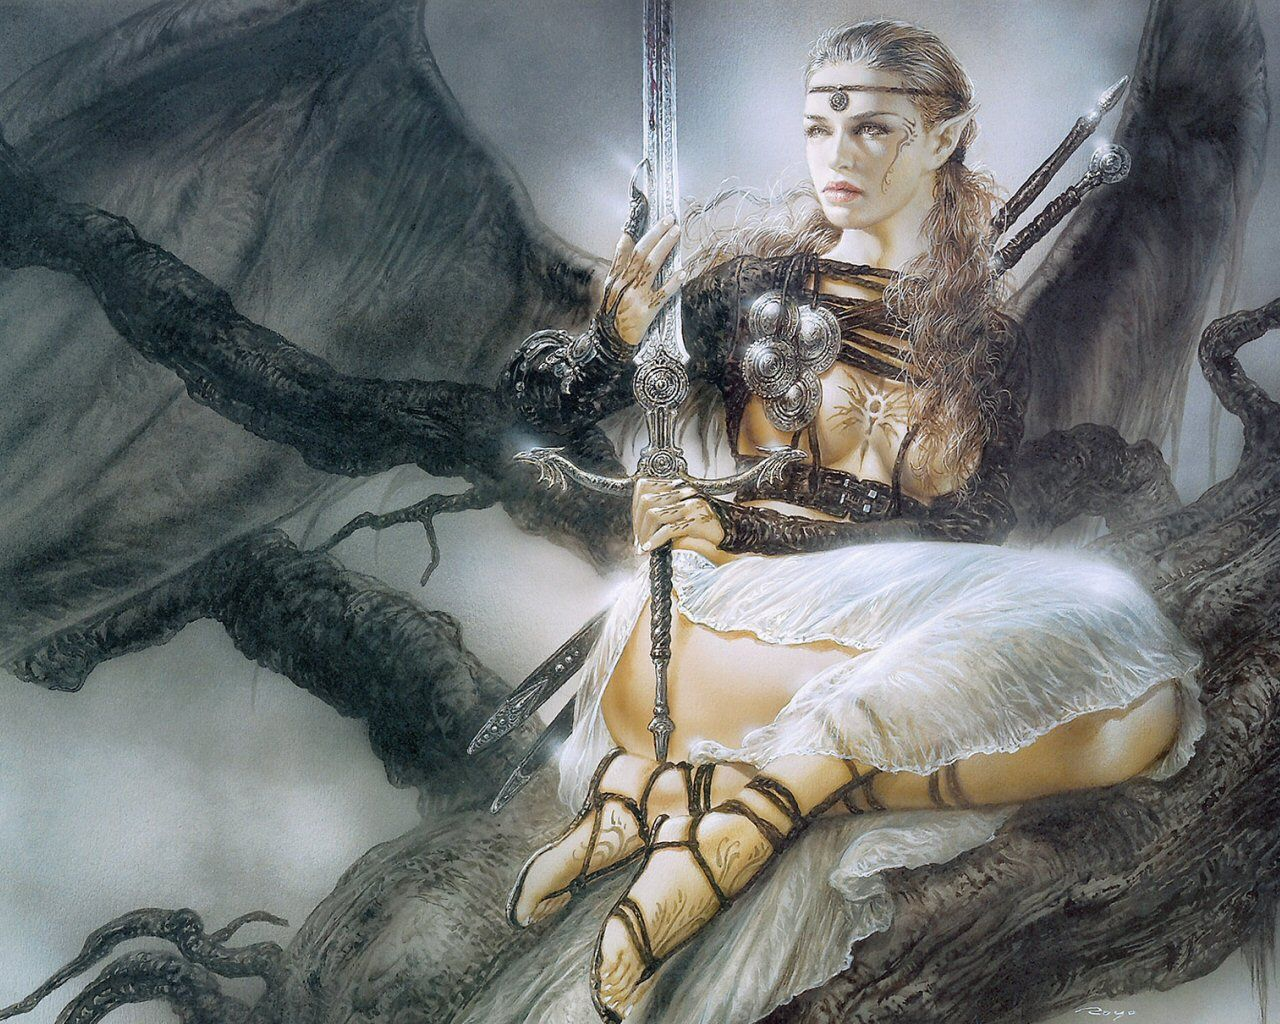 Luis Royo - #DigitalArt #Fantasy #Illustration | Fantasy